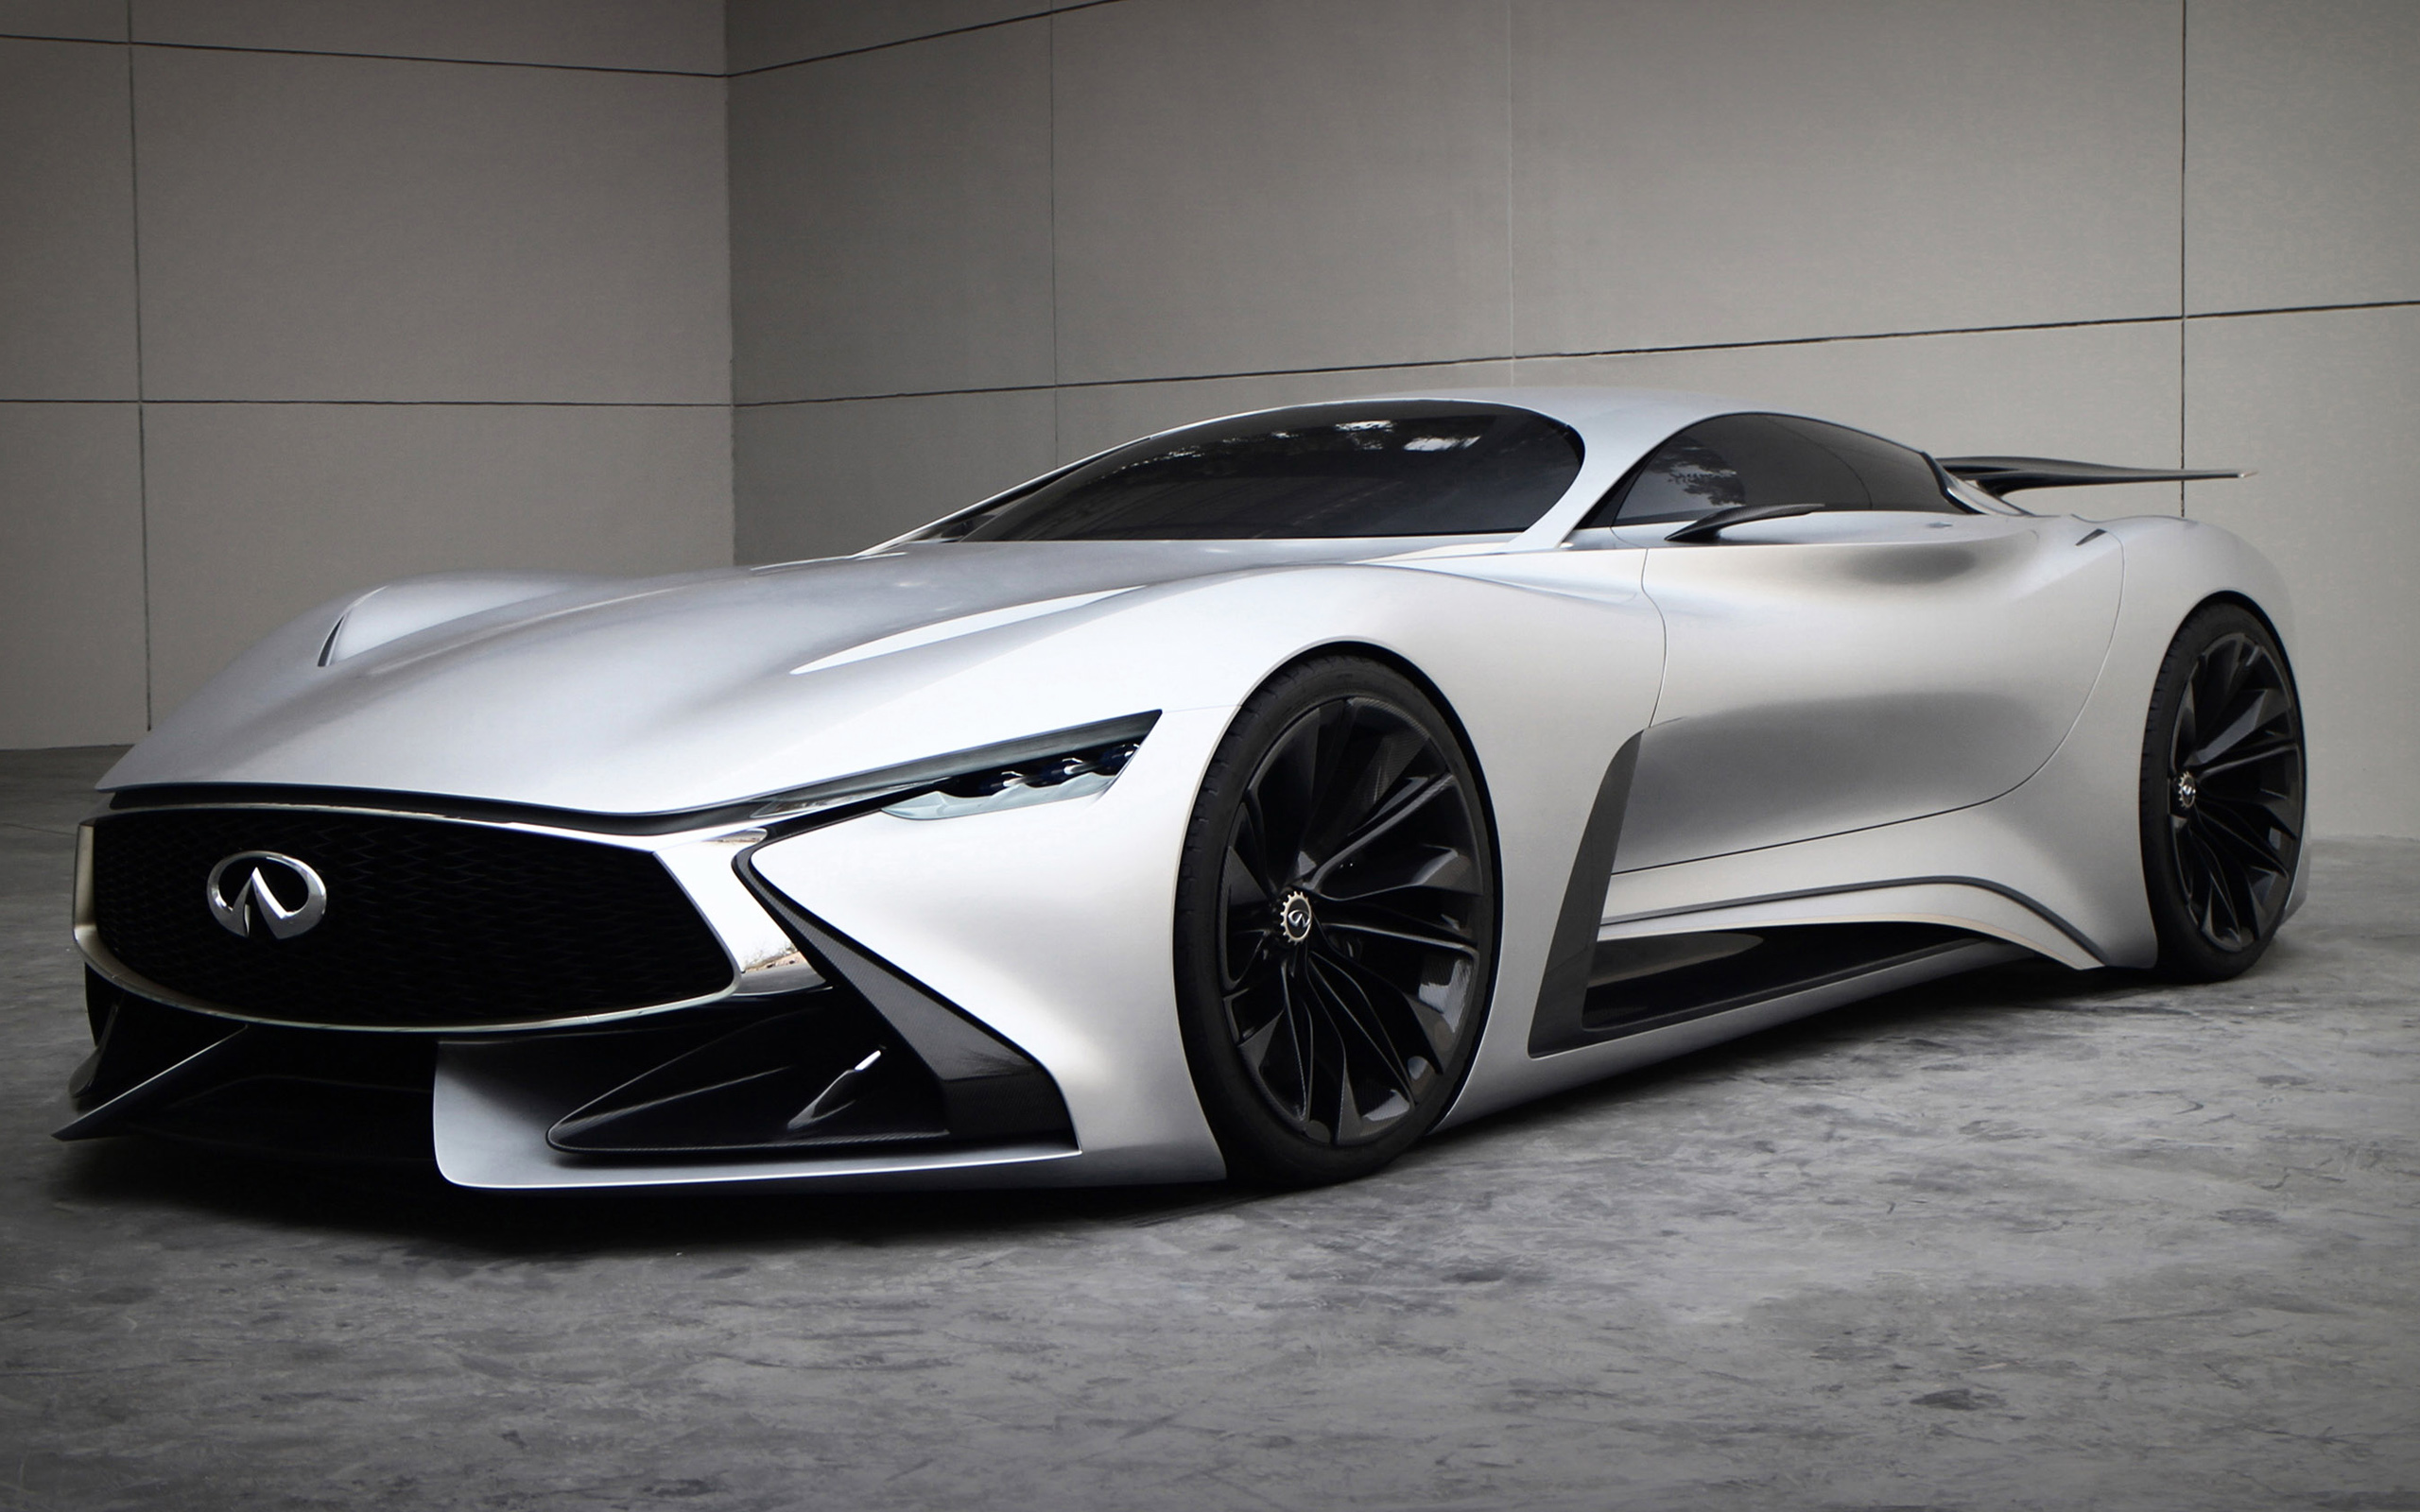 2015 Infiniti Vision Gt Concept 2 Wallpaper Hd Car Wallpapers Id 5327